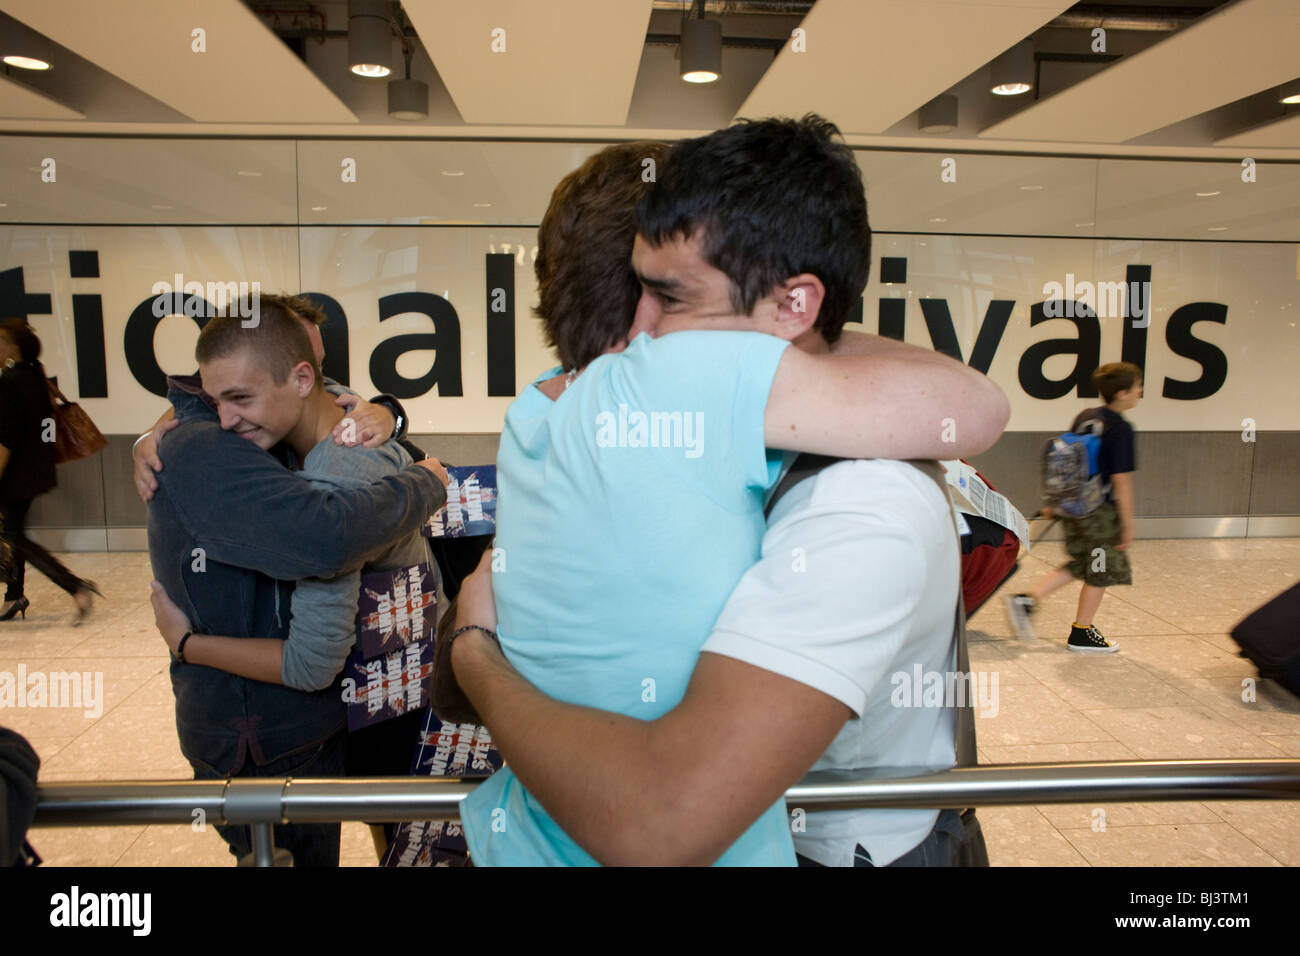 Mothers and sons hug emotionally in the international arrivals hall of Heathrow Airport's Terminal 5 airport. - Stock Image